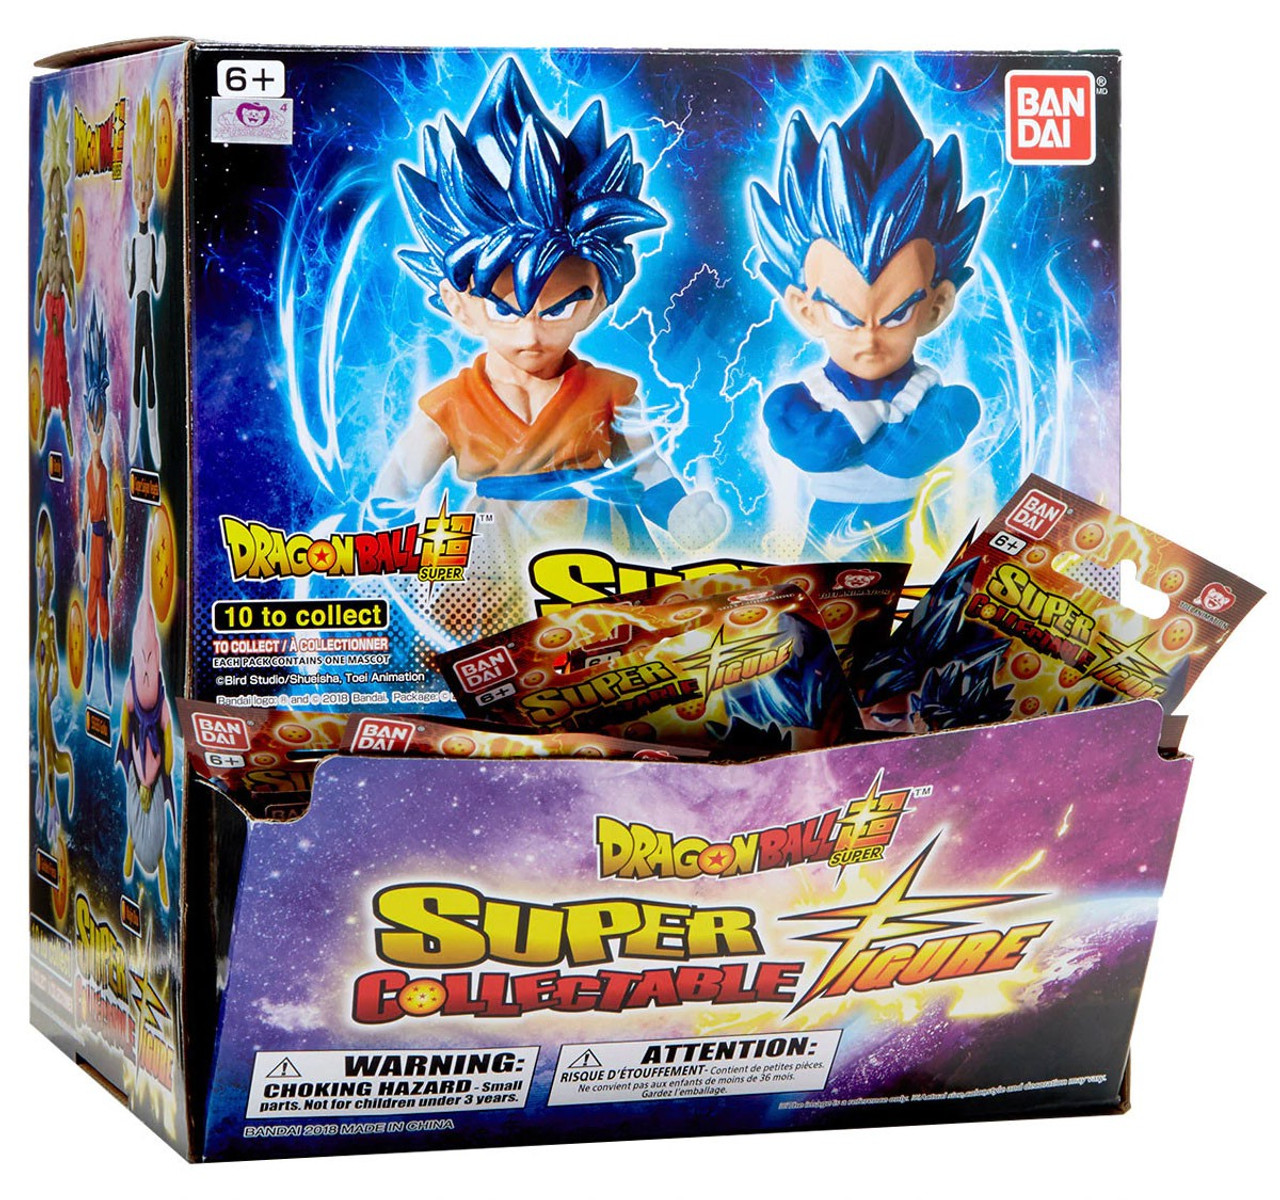 Dragon Ball Super Super Collectable Figure Mystery Box 24 Packs